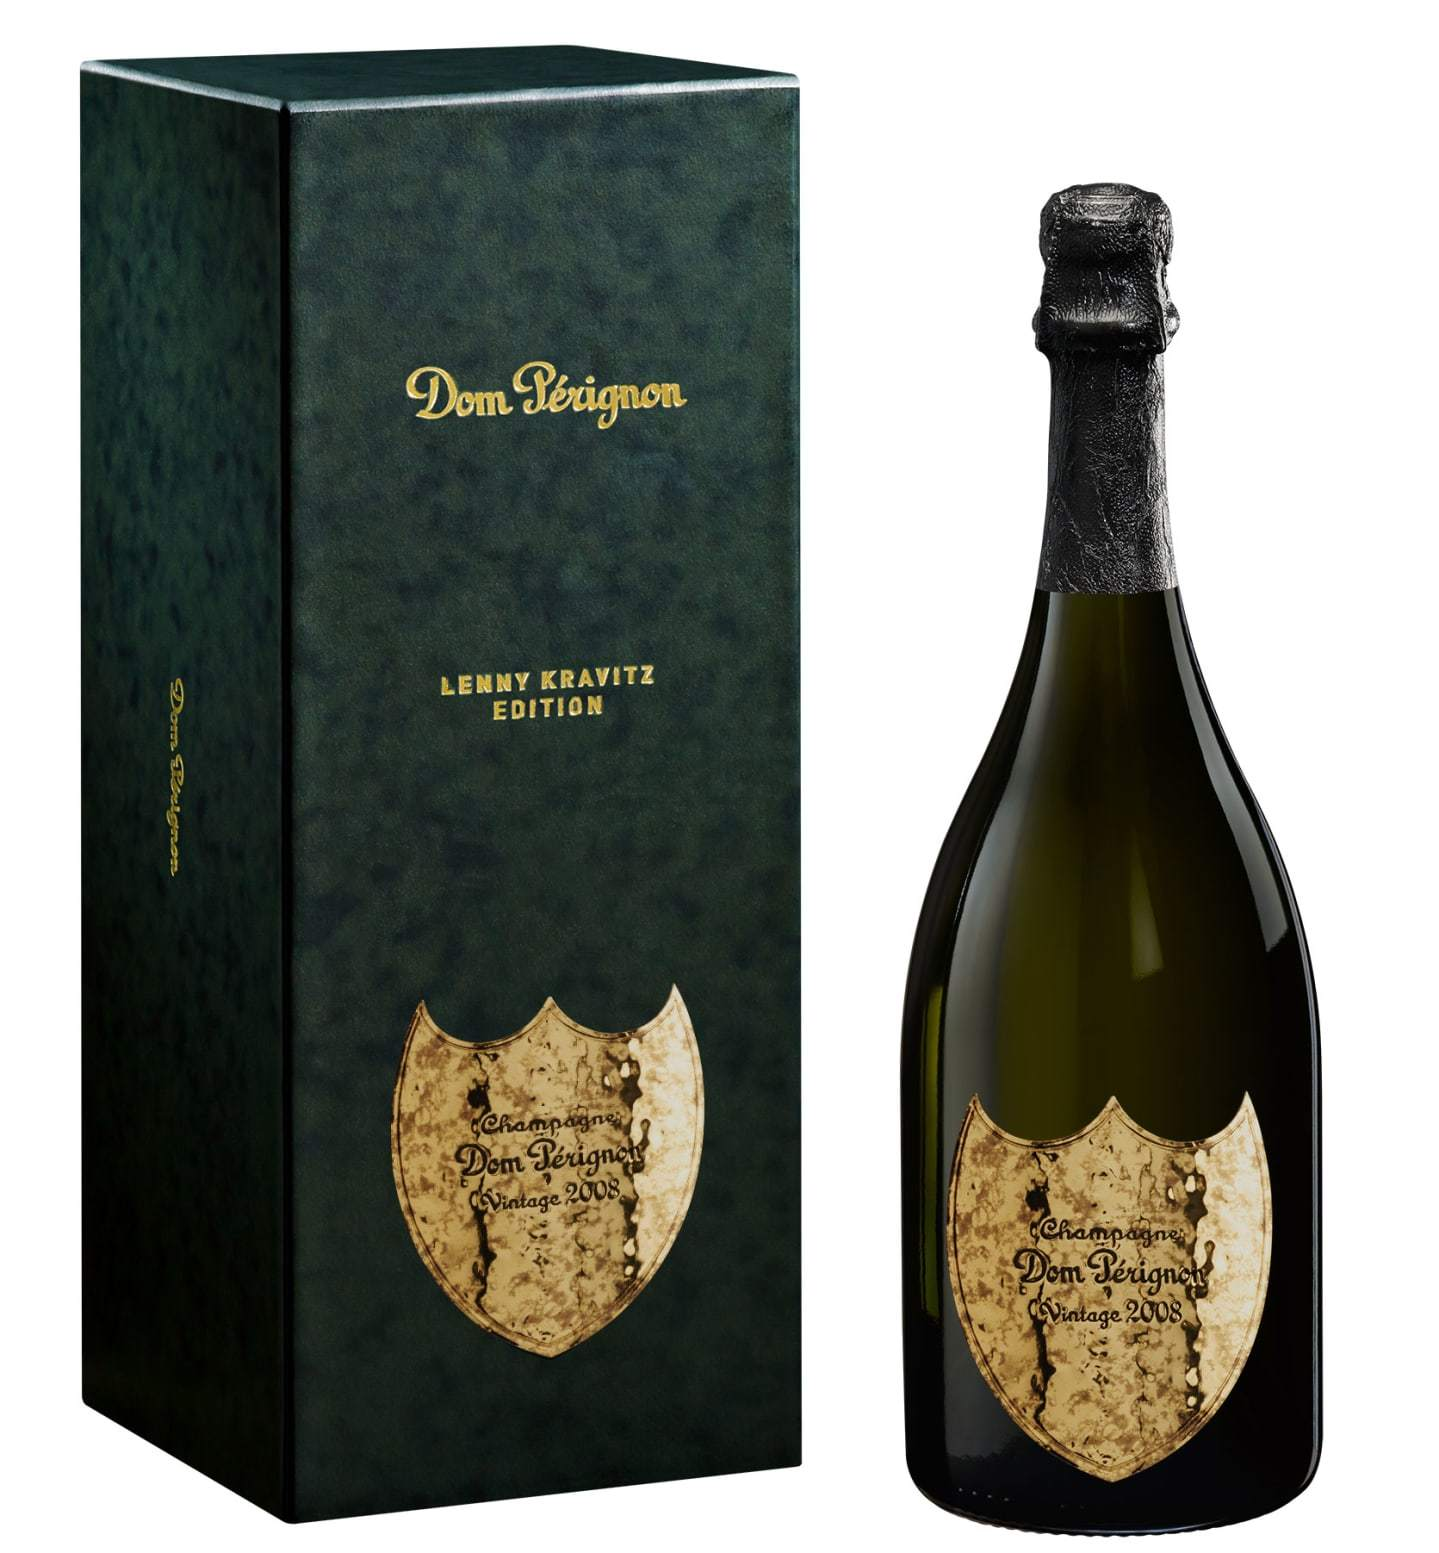 Dom Perignon 2008 Lenny Kravitz Limited Edition Gift Box